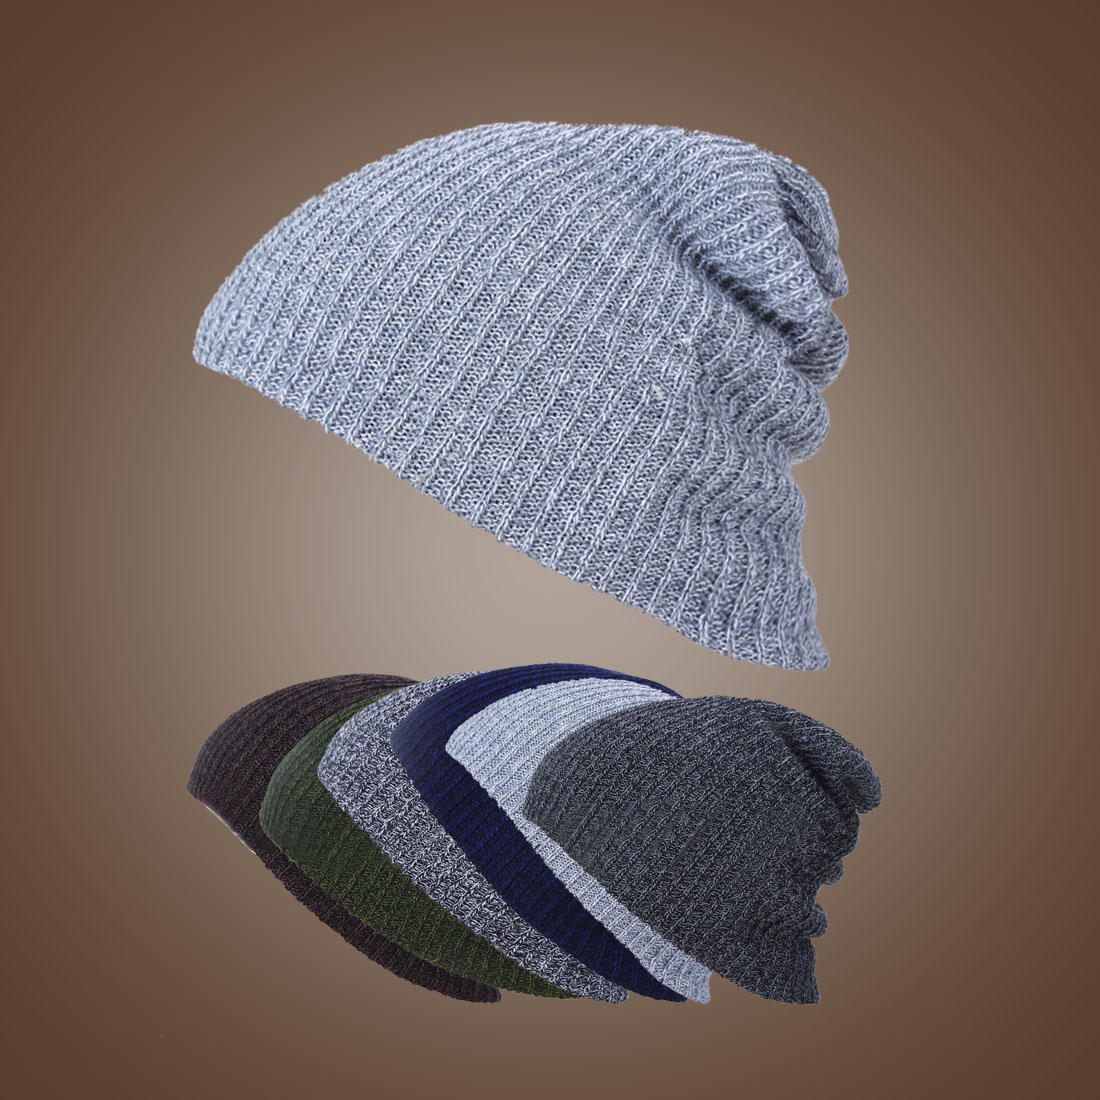 New Knit Men's Baggy Beanie Oversize Winter Warm Hats Slouchy Chic Crochet Knitted Cap For Women Girl's Hat Thick Female Cap winter casual cotton knit hats for women men baggy beanie hat crochet slouchy oversized ski cap warm skullies toucas gorros 448e